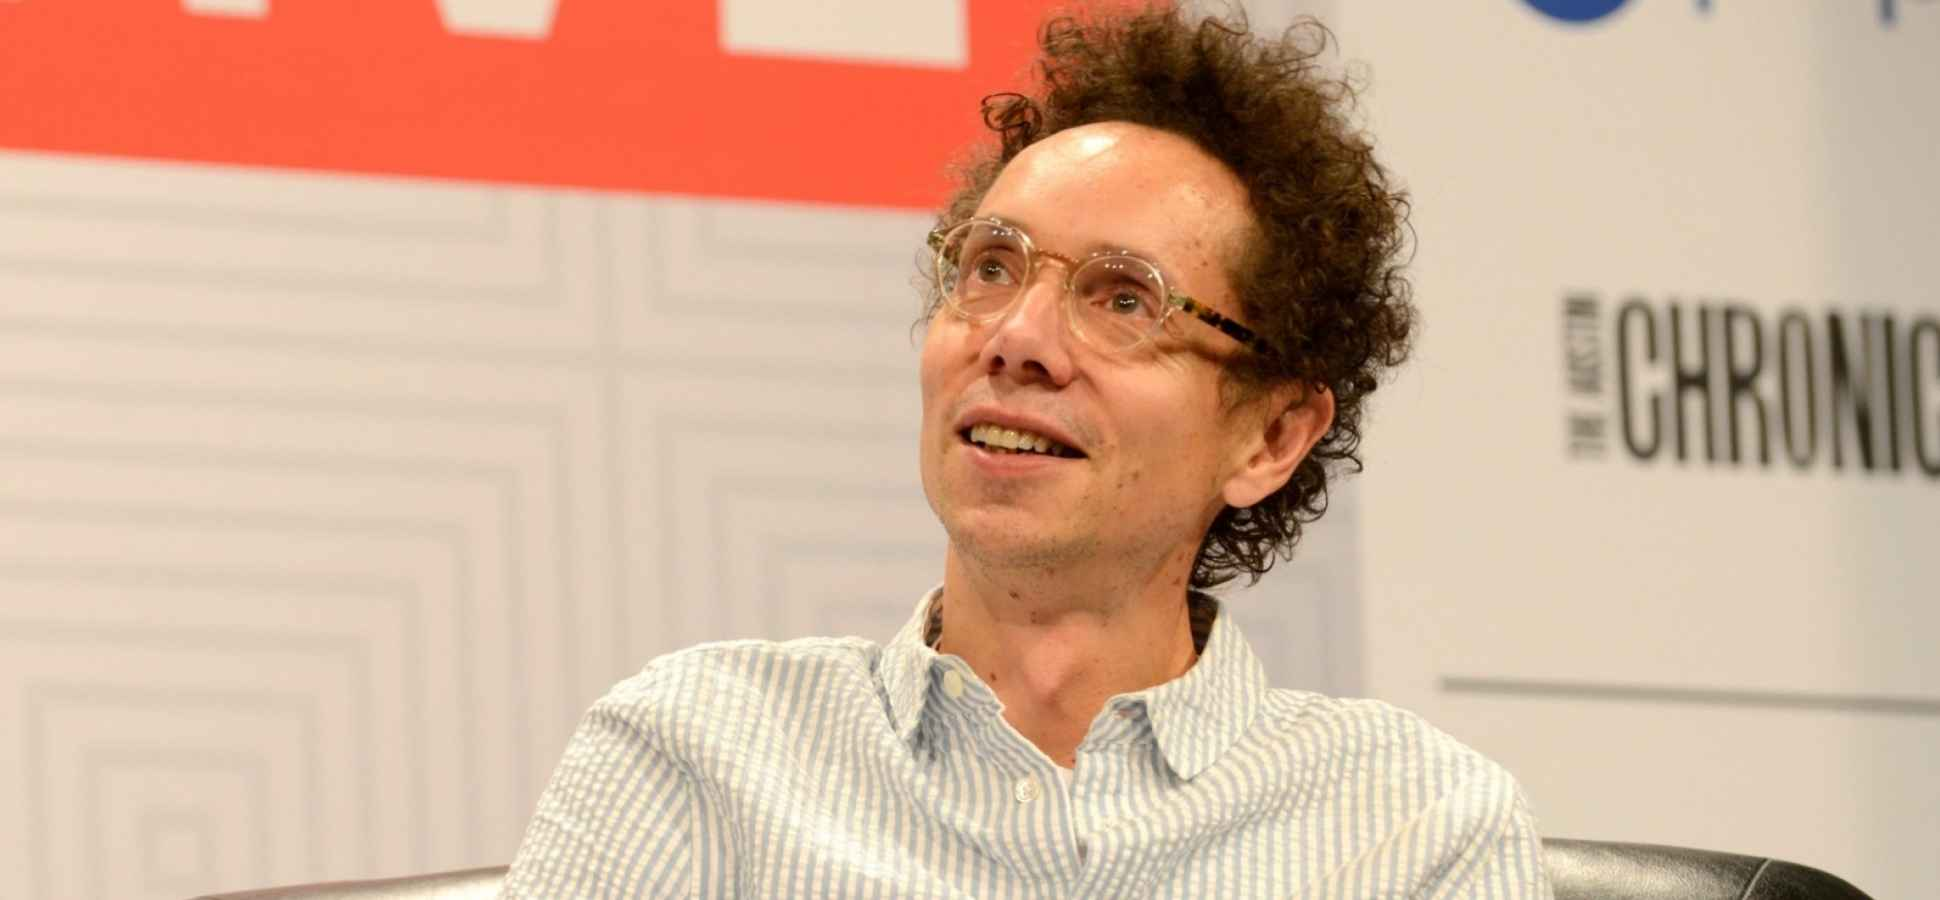 Malcolm Gladwell: This Is How You Develop True Expertise